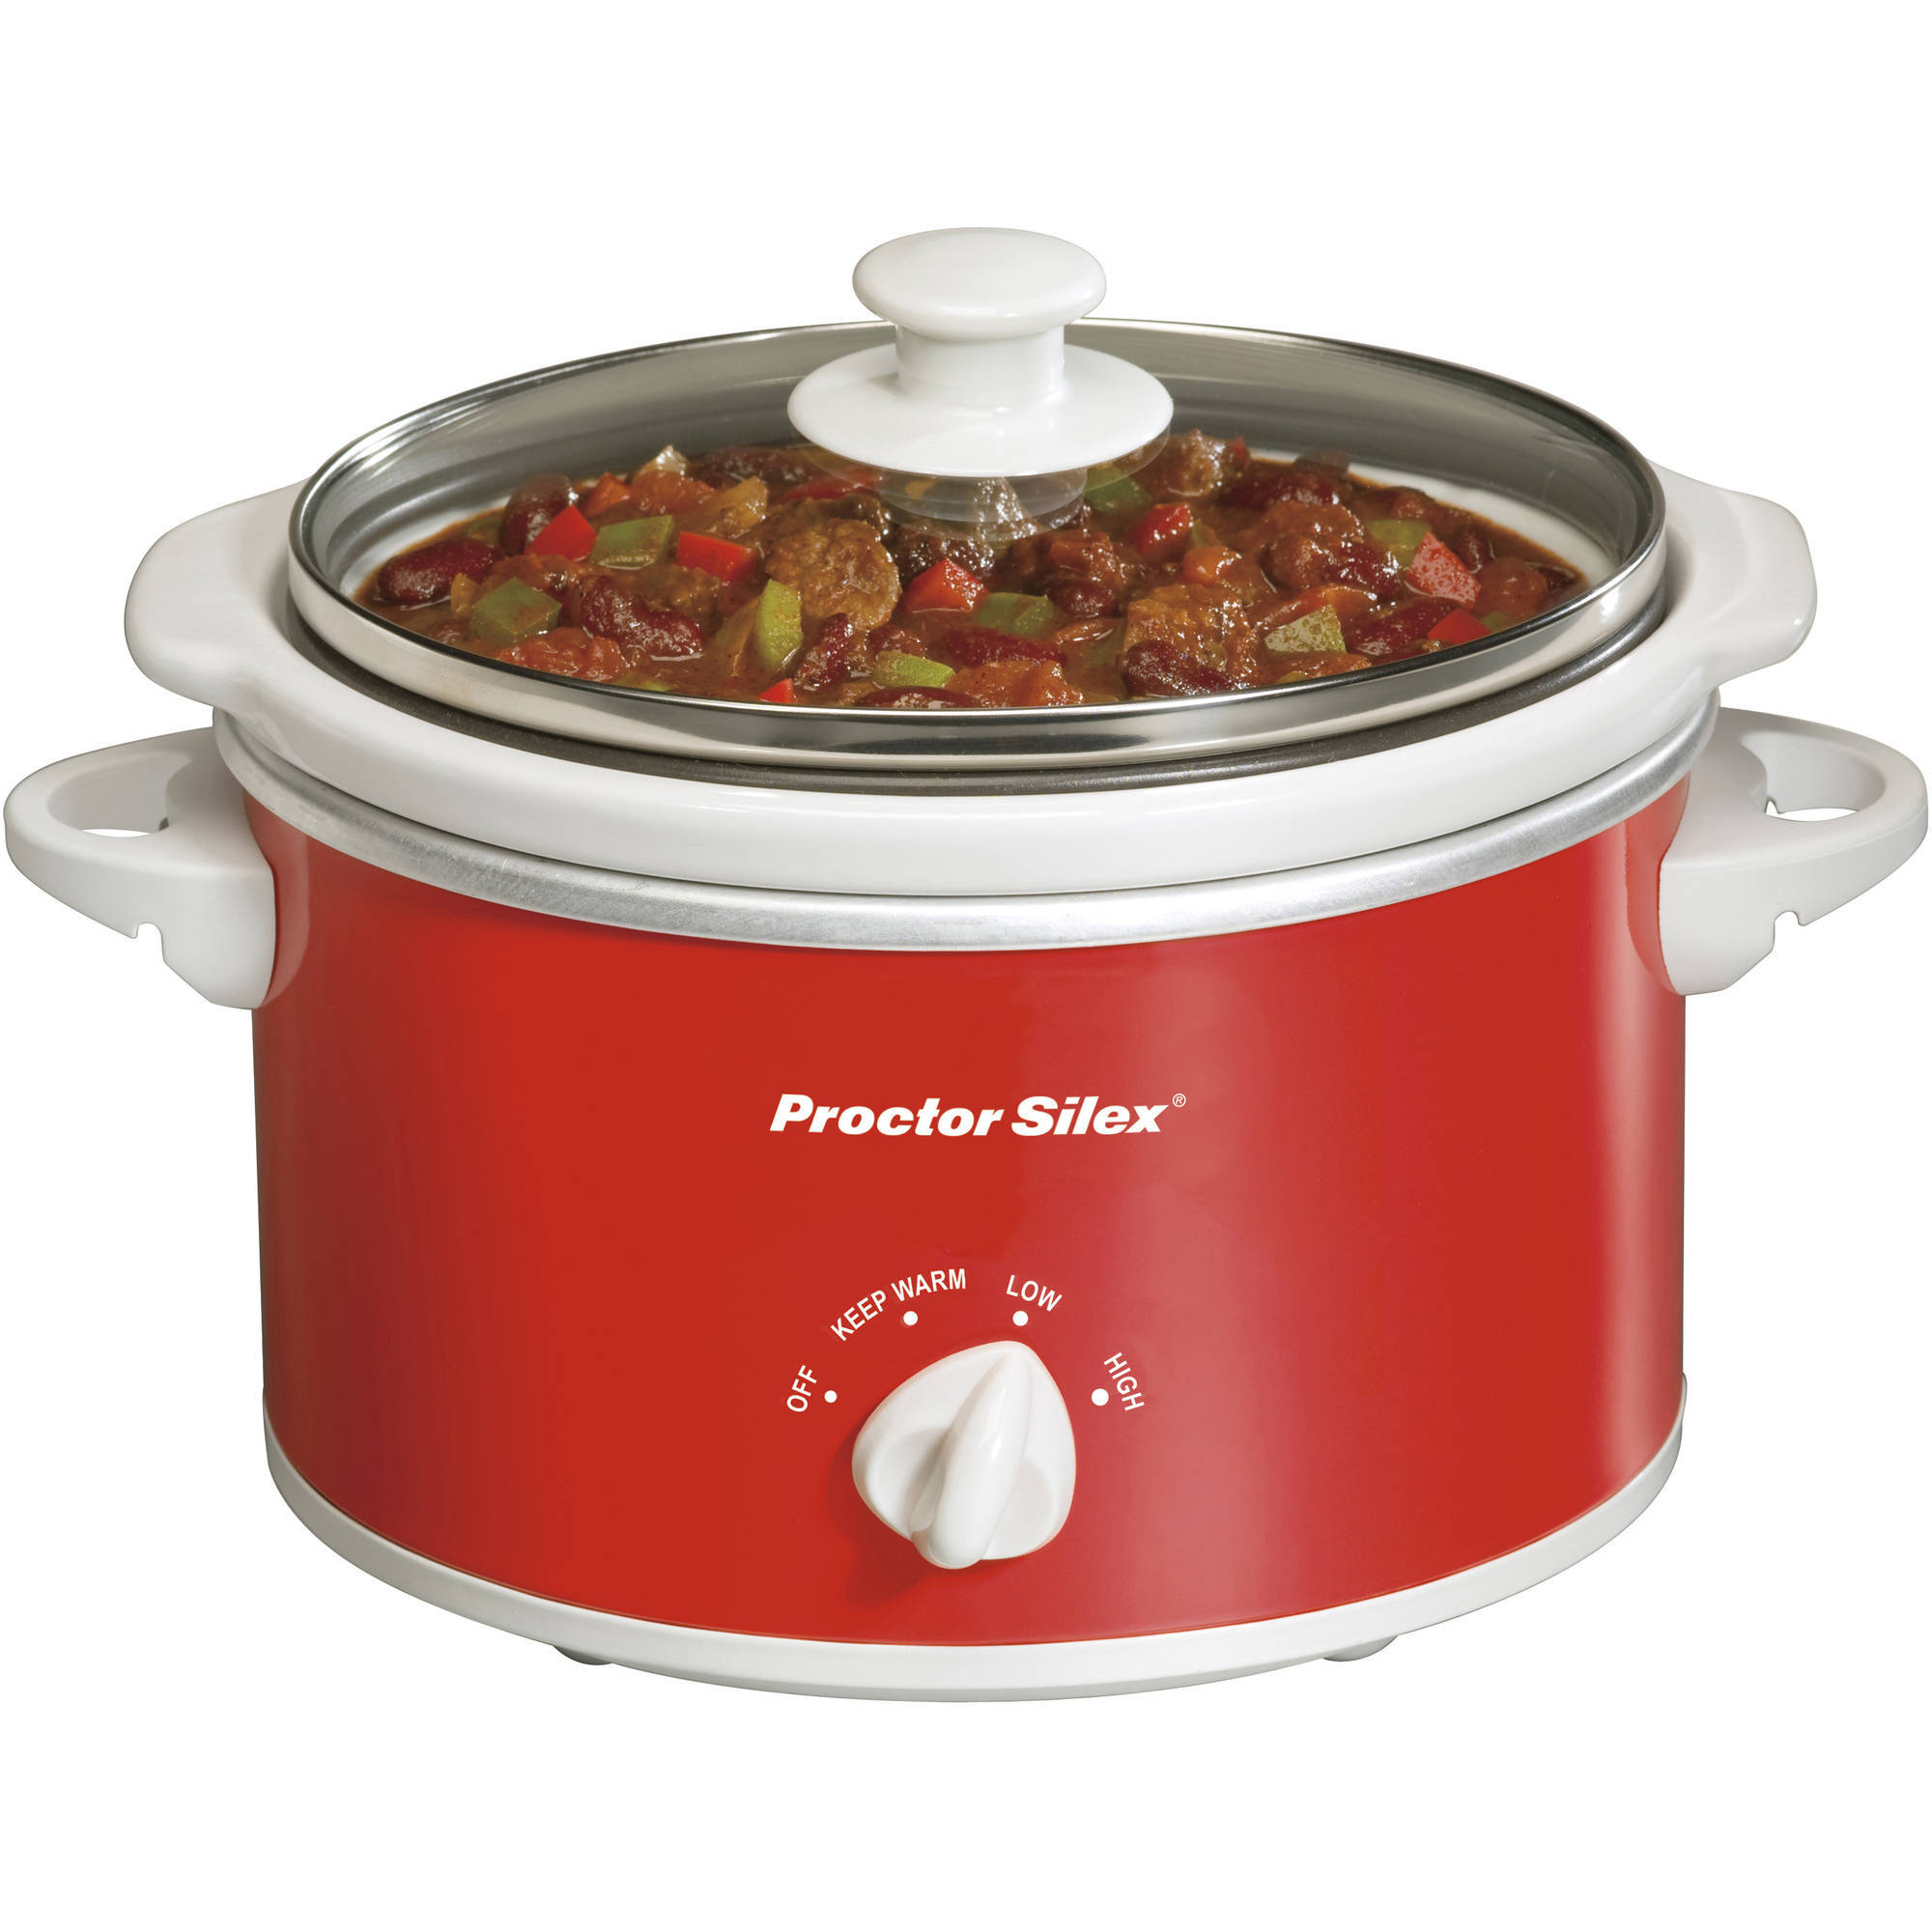 Proctor Silex 1.5-Quart Portable Oval Slow Cooker, Red